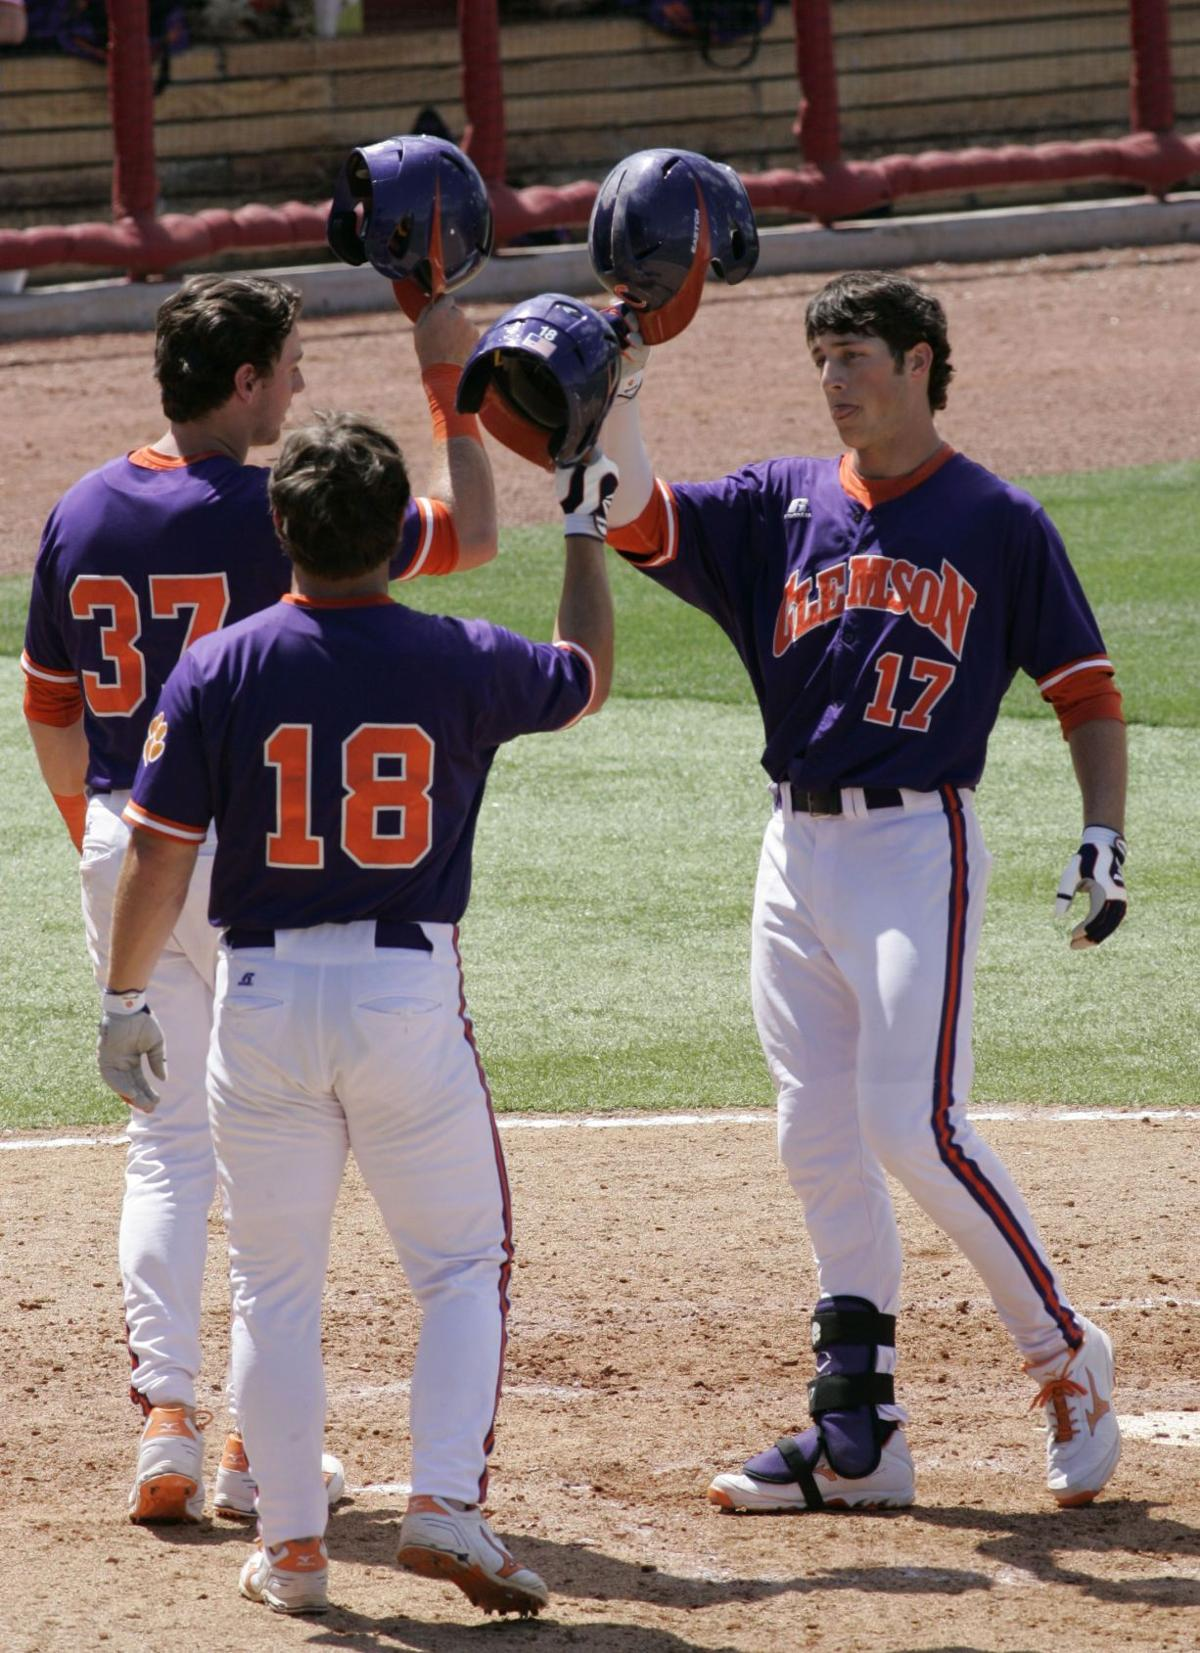 Wilkerson's back-to-back blasts help Clemson bounce back